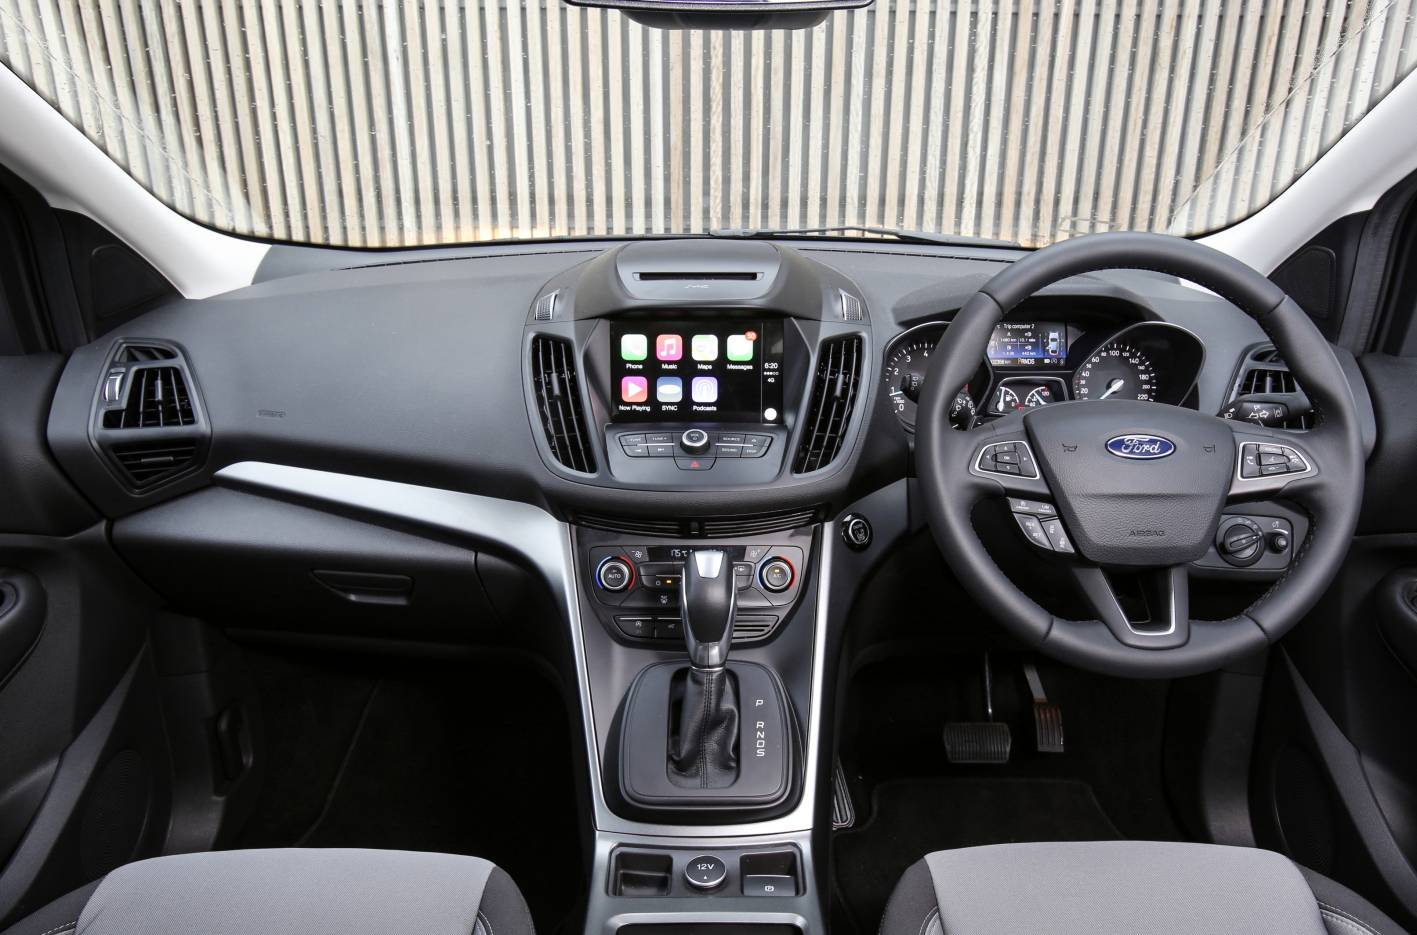 ford escape trend towing capacity boosts keener appeal pricing kit forcegt paddle 1800kg interior